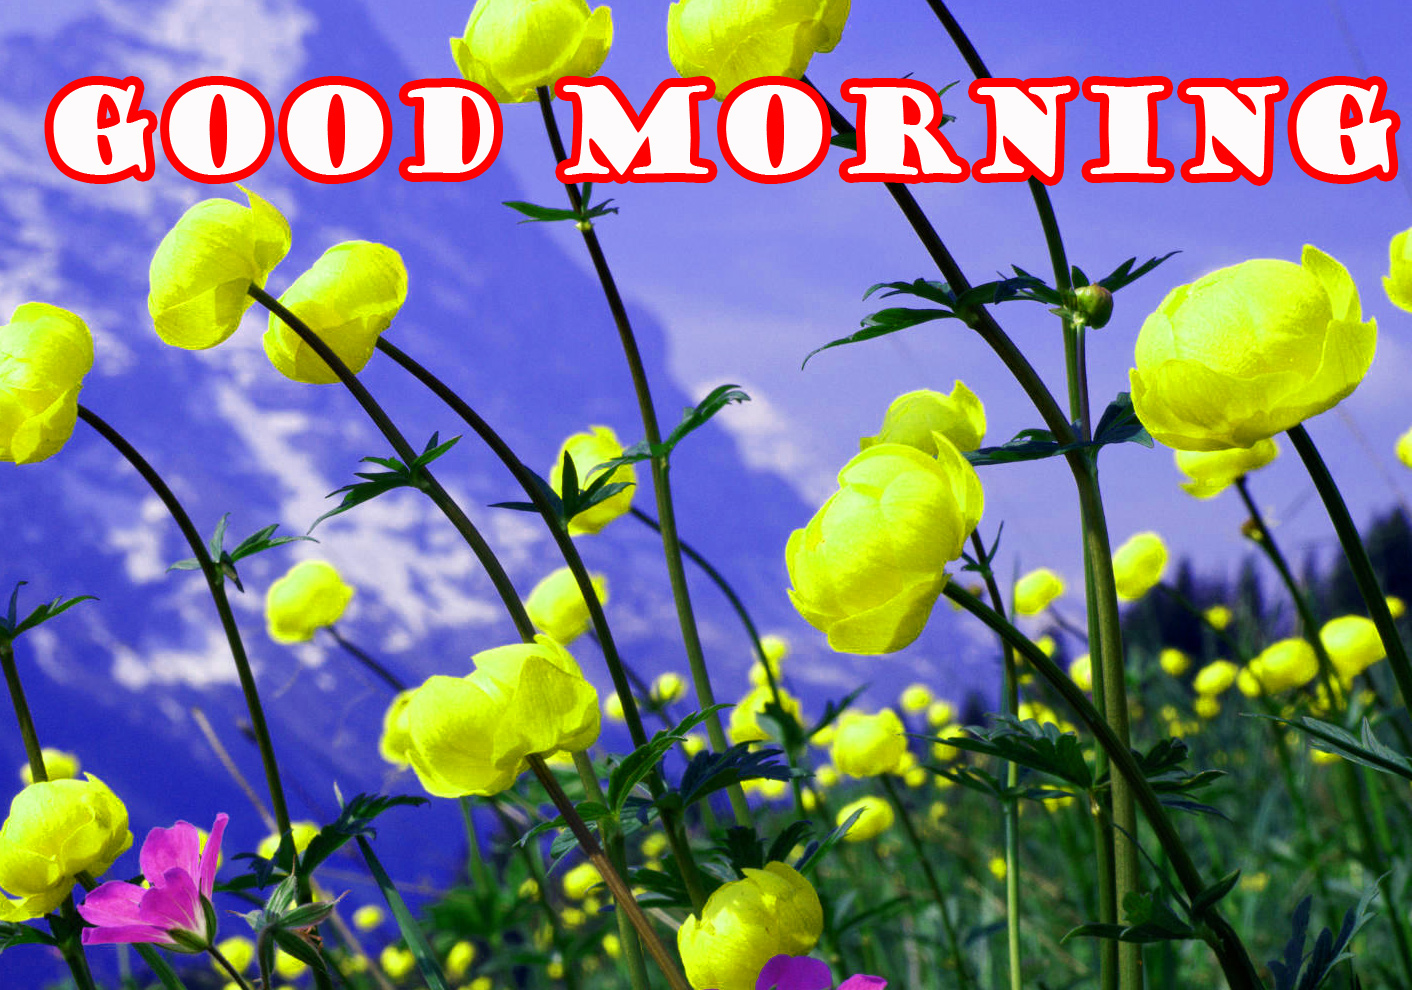 Good Morning Flowers Pictures Images Photo HD Download